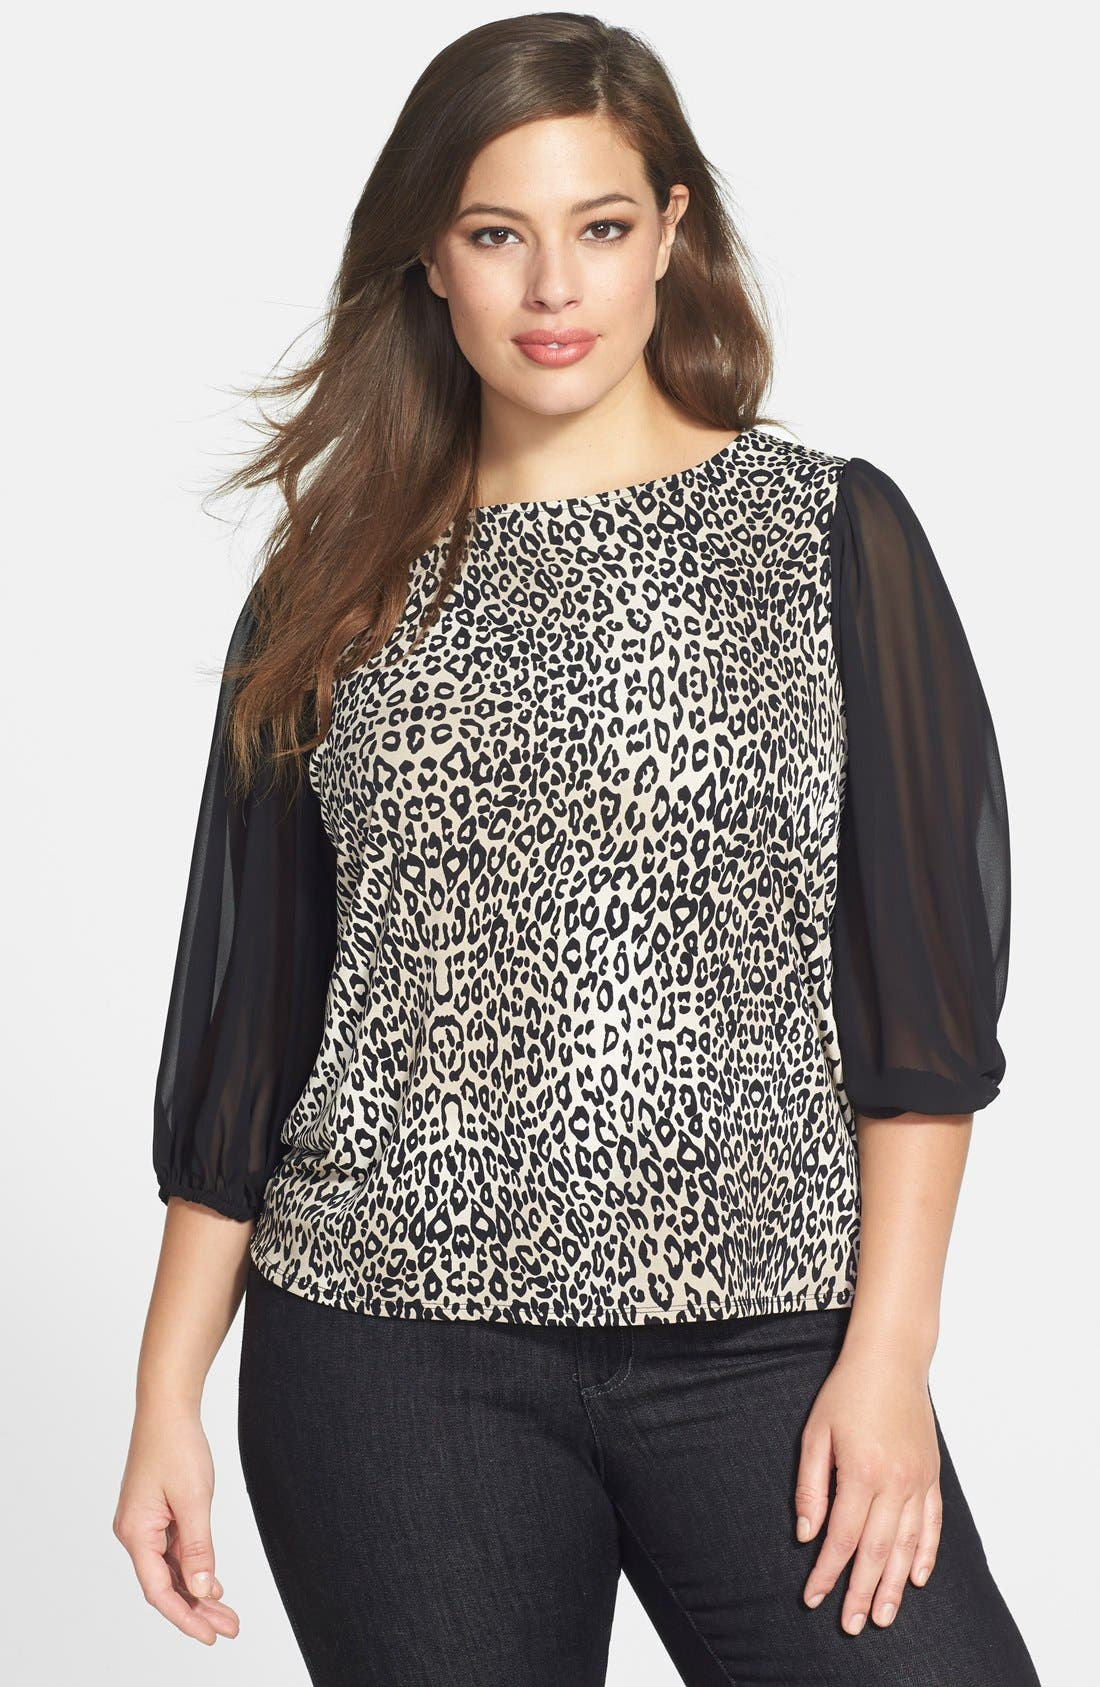 Alternate Image 1 Selected - Vince Camuto 'Desert Leopard' Chiffon Sleeve Top (Plus Size)